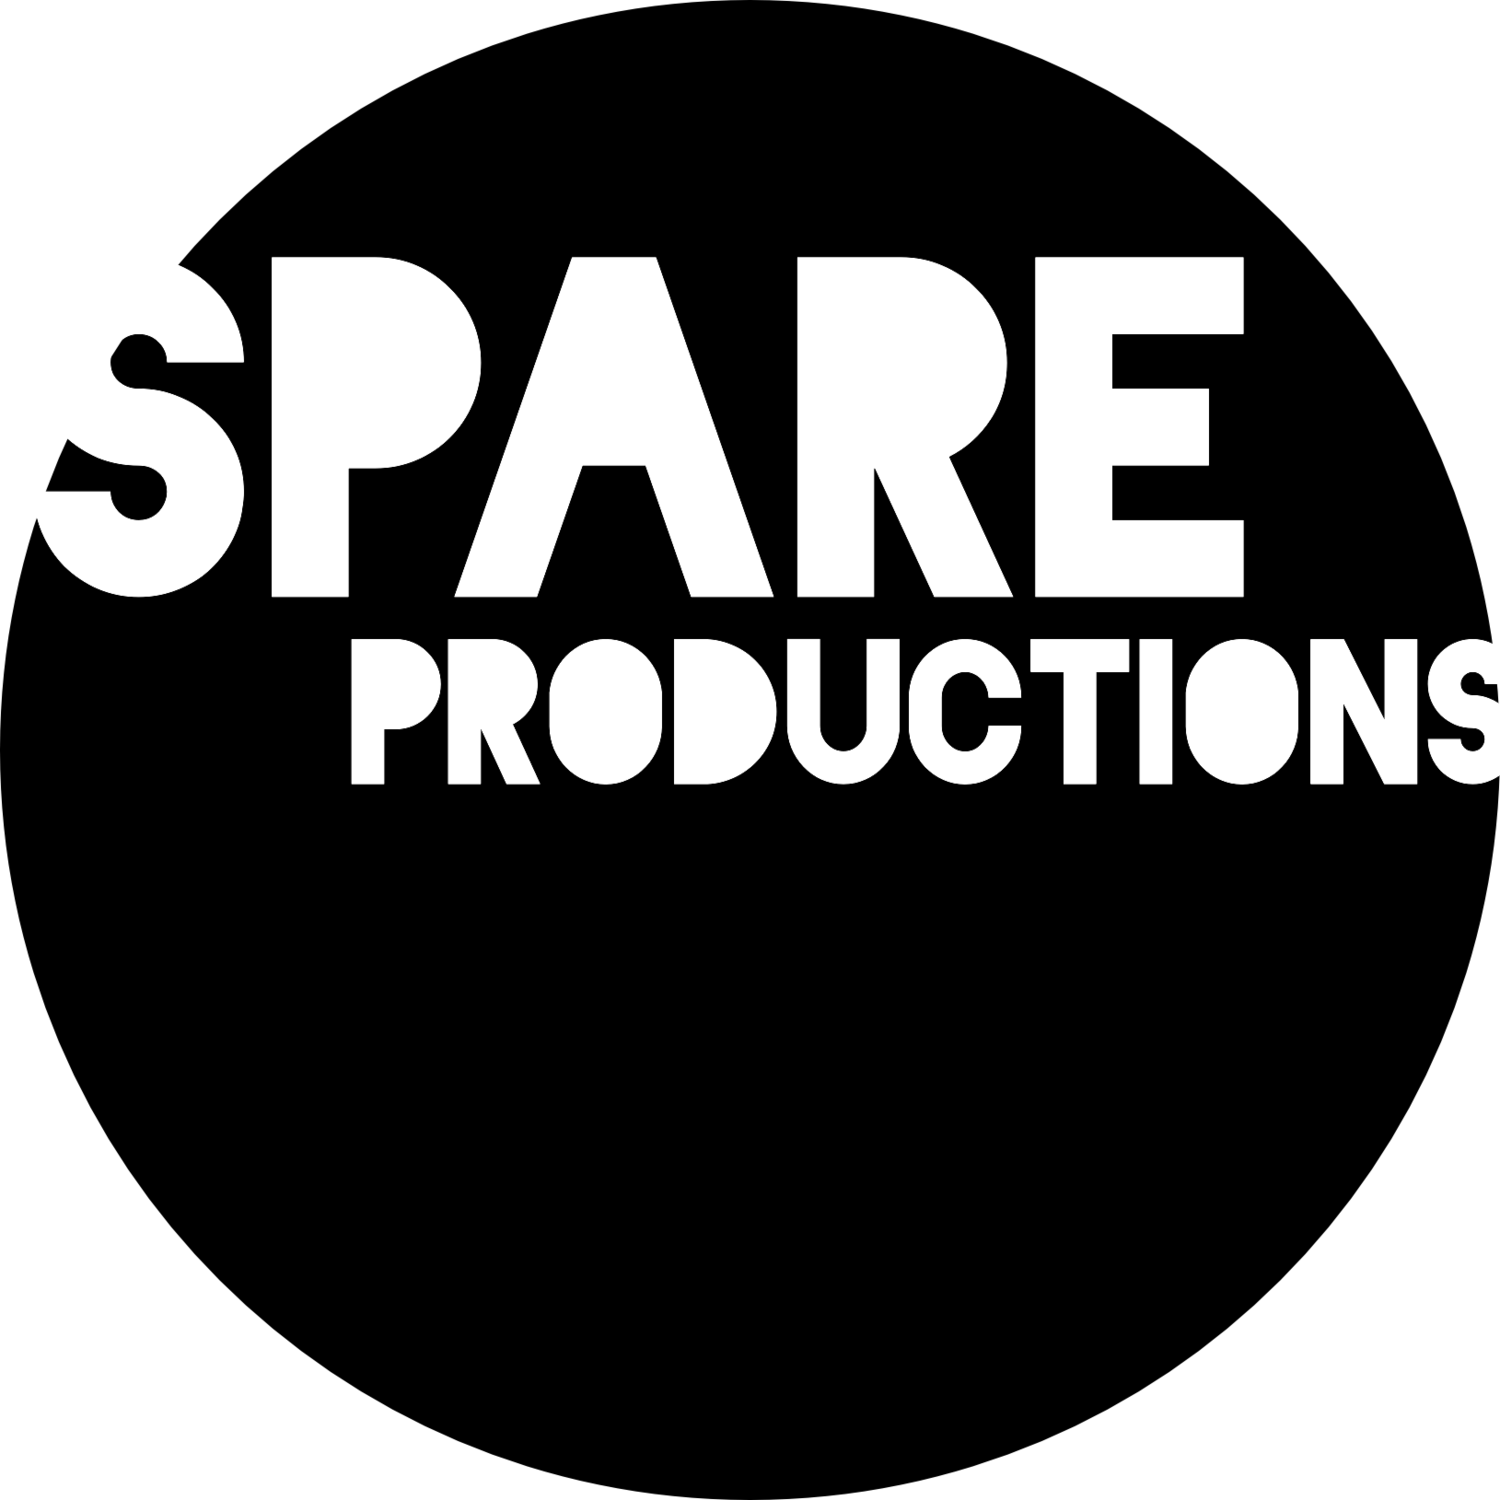 SPARE Productions